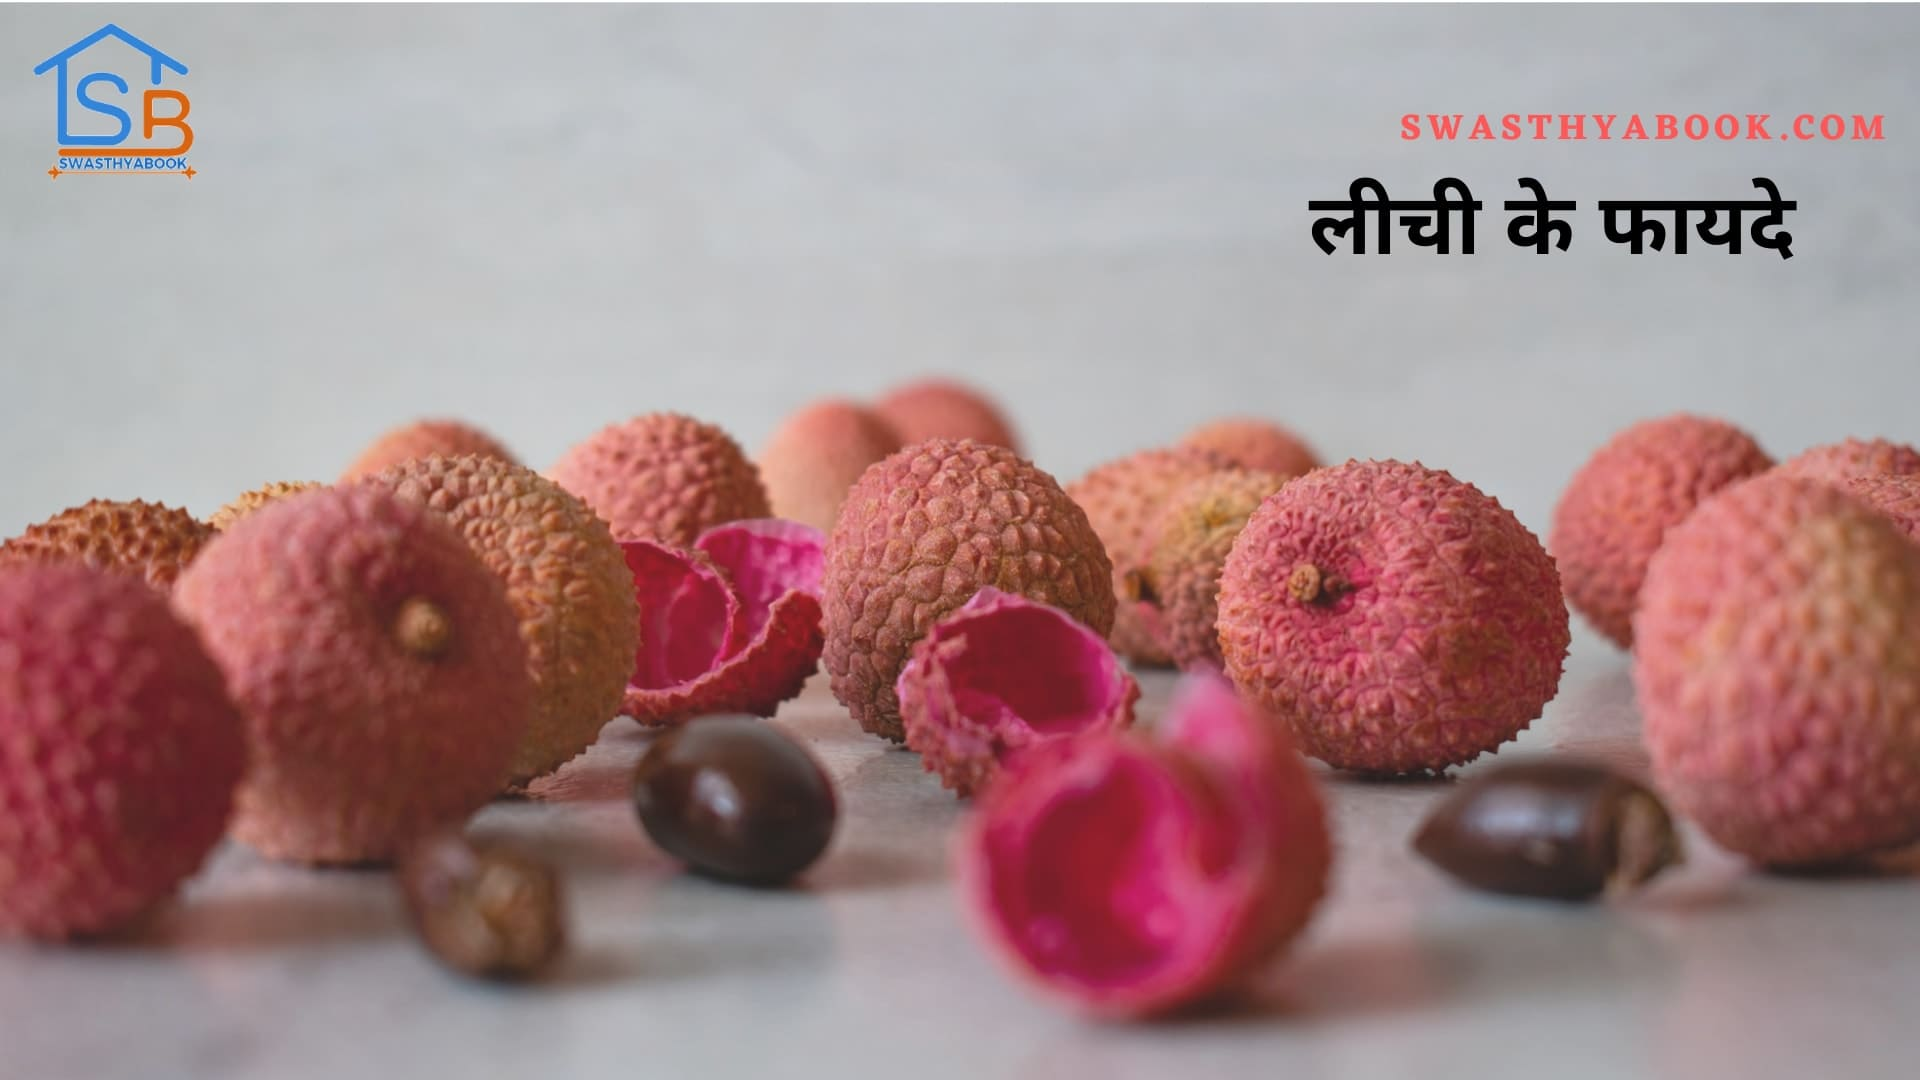 Litchi benefits | लीची के फायदे | Benefits of lychee - Swasthyabook